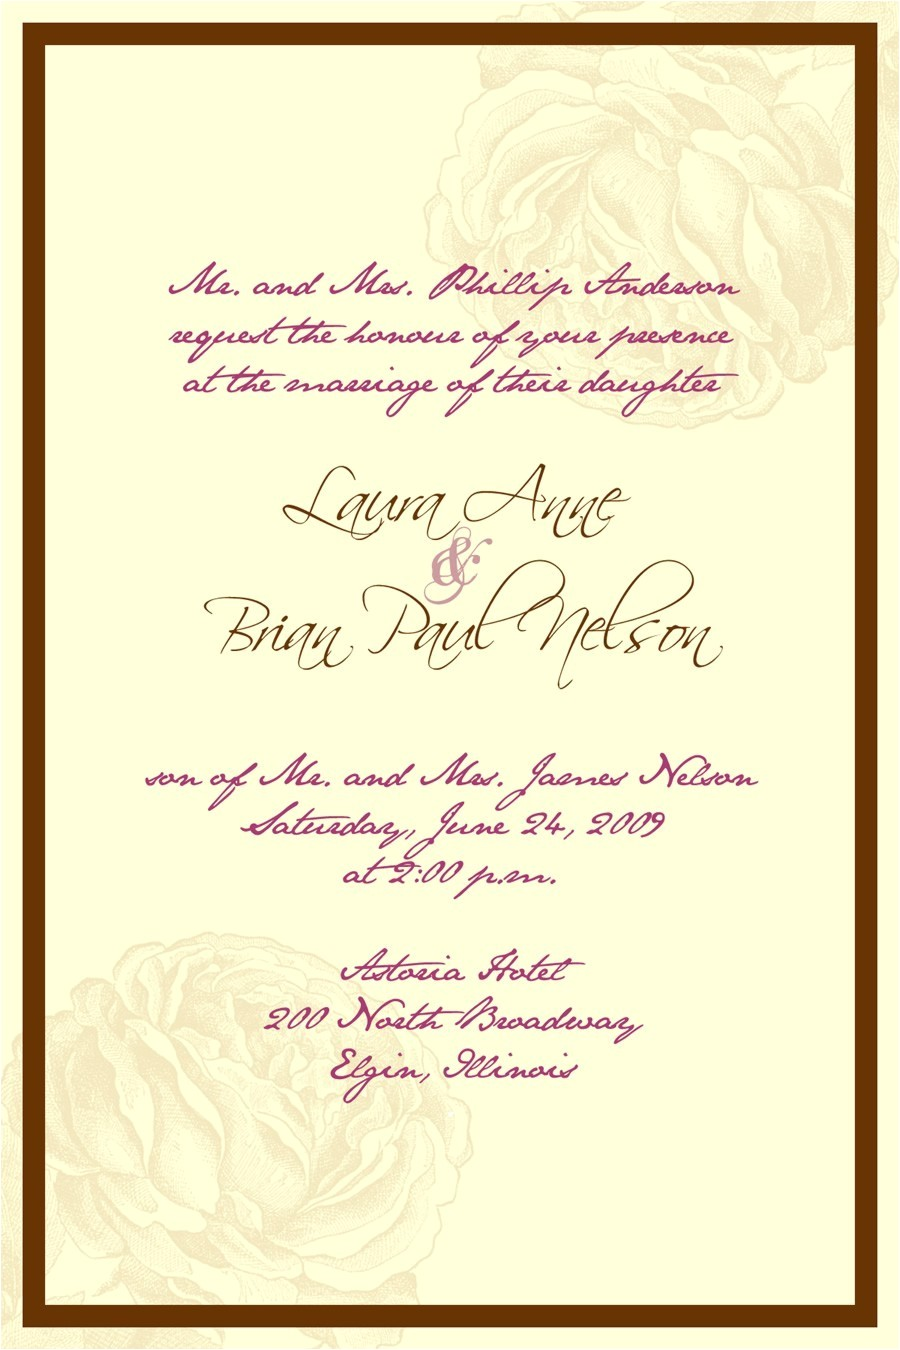 ethiopian wedding invitation cards ethiopian wedding invitation card in amharic new wedding